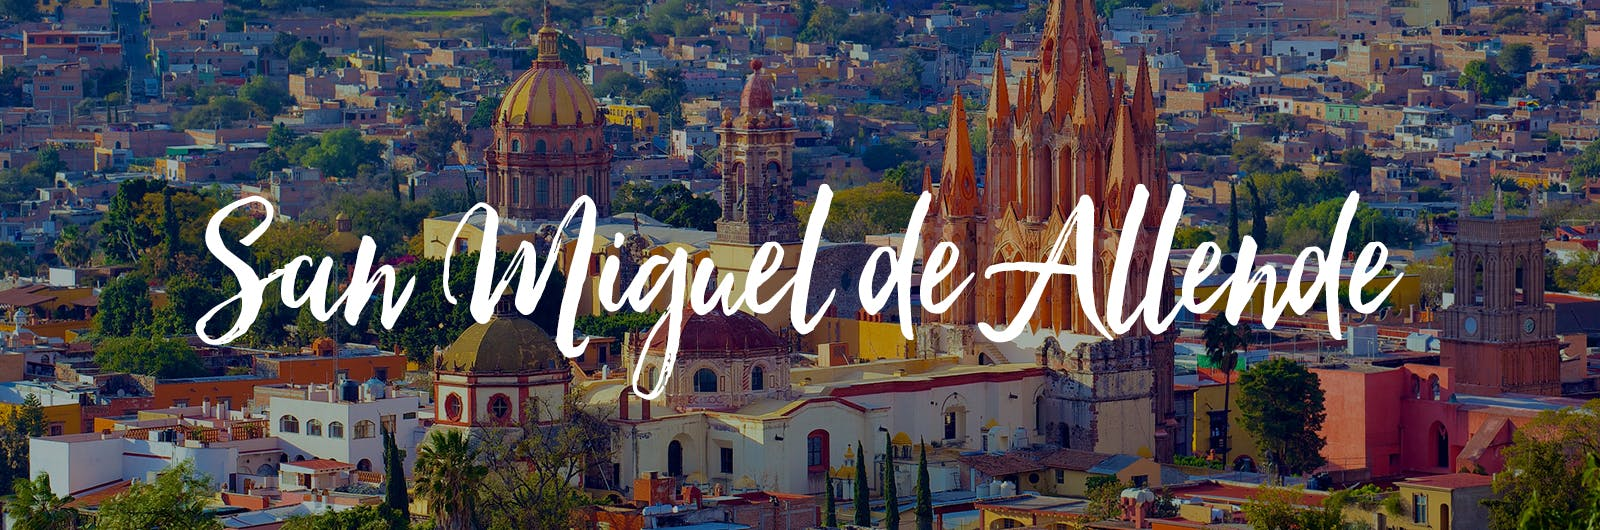 San Miguel De Allende Travel Guide What To Do Purewow